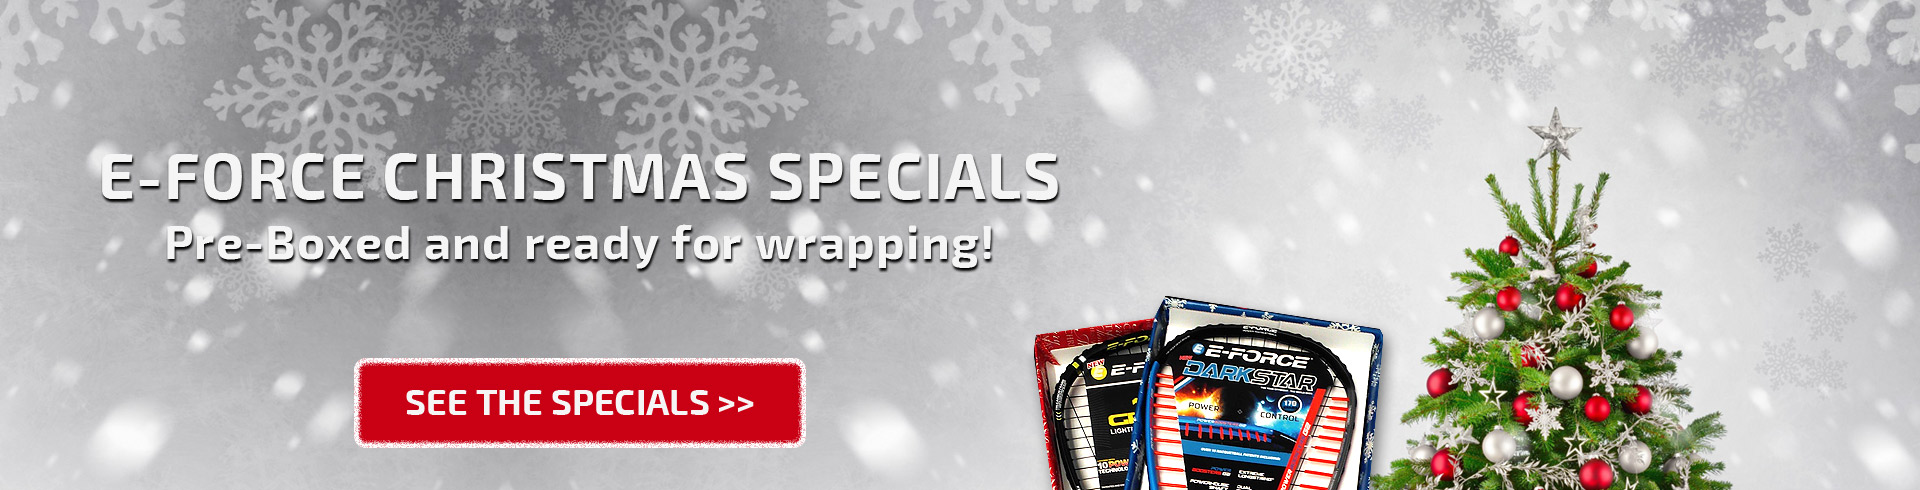 Christmas specials from E-Force